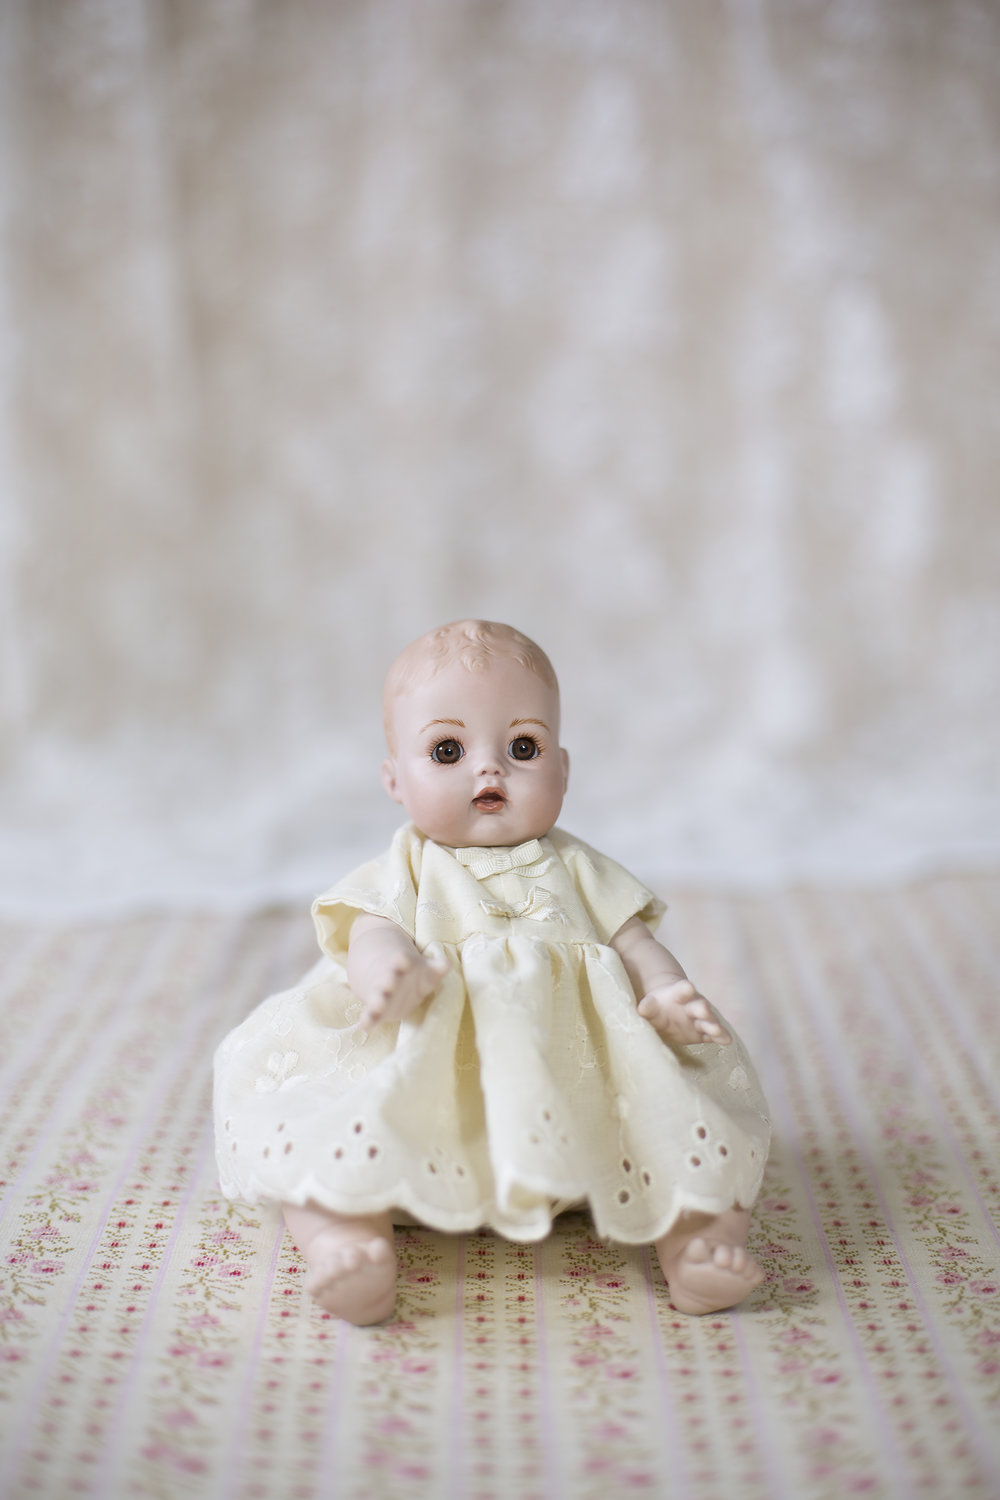 """While in a craft sale on her road in Christchurch,Judith saw this doll and remarked how much she liked it. At the time she was a member of the Christchurch Doll Club (1989-2002) and decided that the doll should became the mascot for the club. In appreciation of the large amounts of orders for the doll following it becoming the Christchurch Doll Club mascot, the doll maker gave Judith this doll as a gift. She has """"To Judy from Wilma Aug 1999"""" inscribed on the back of her head."""